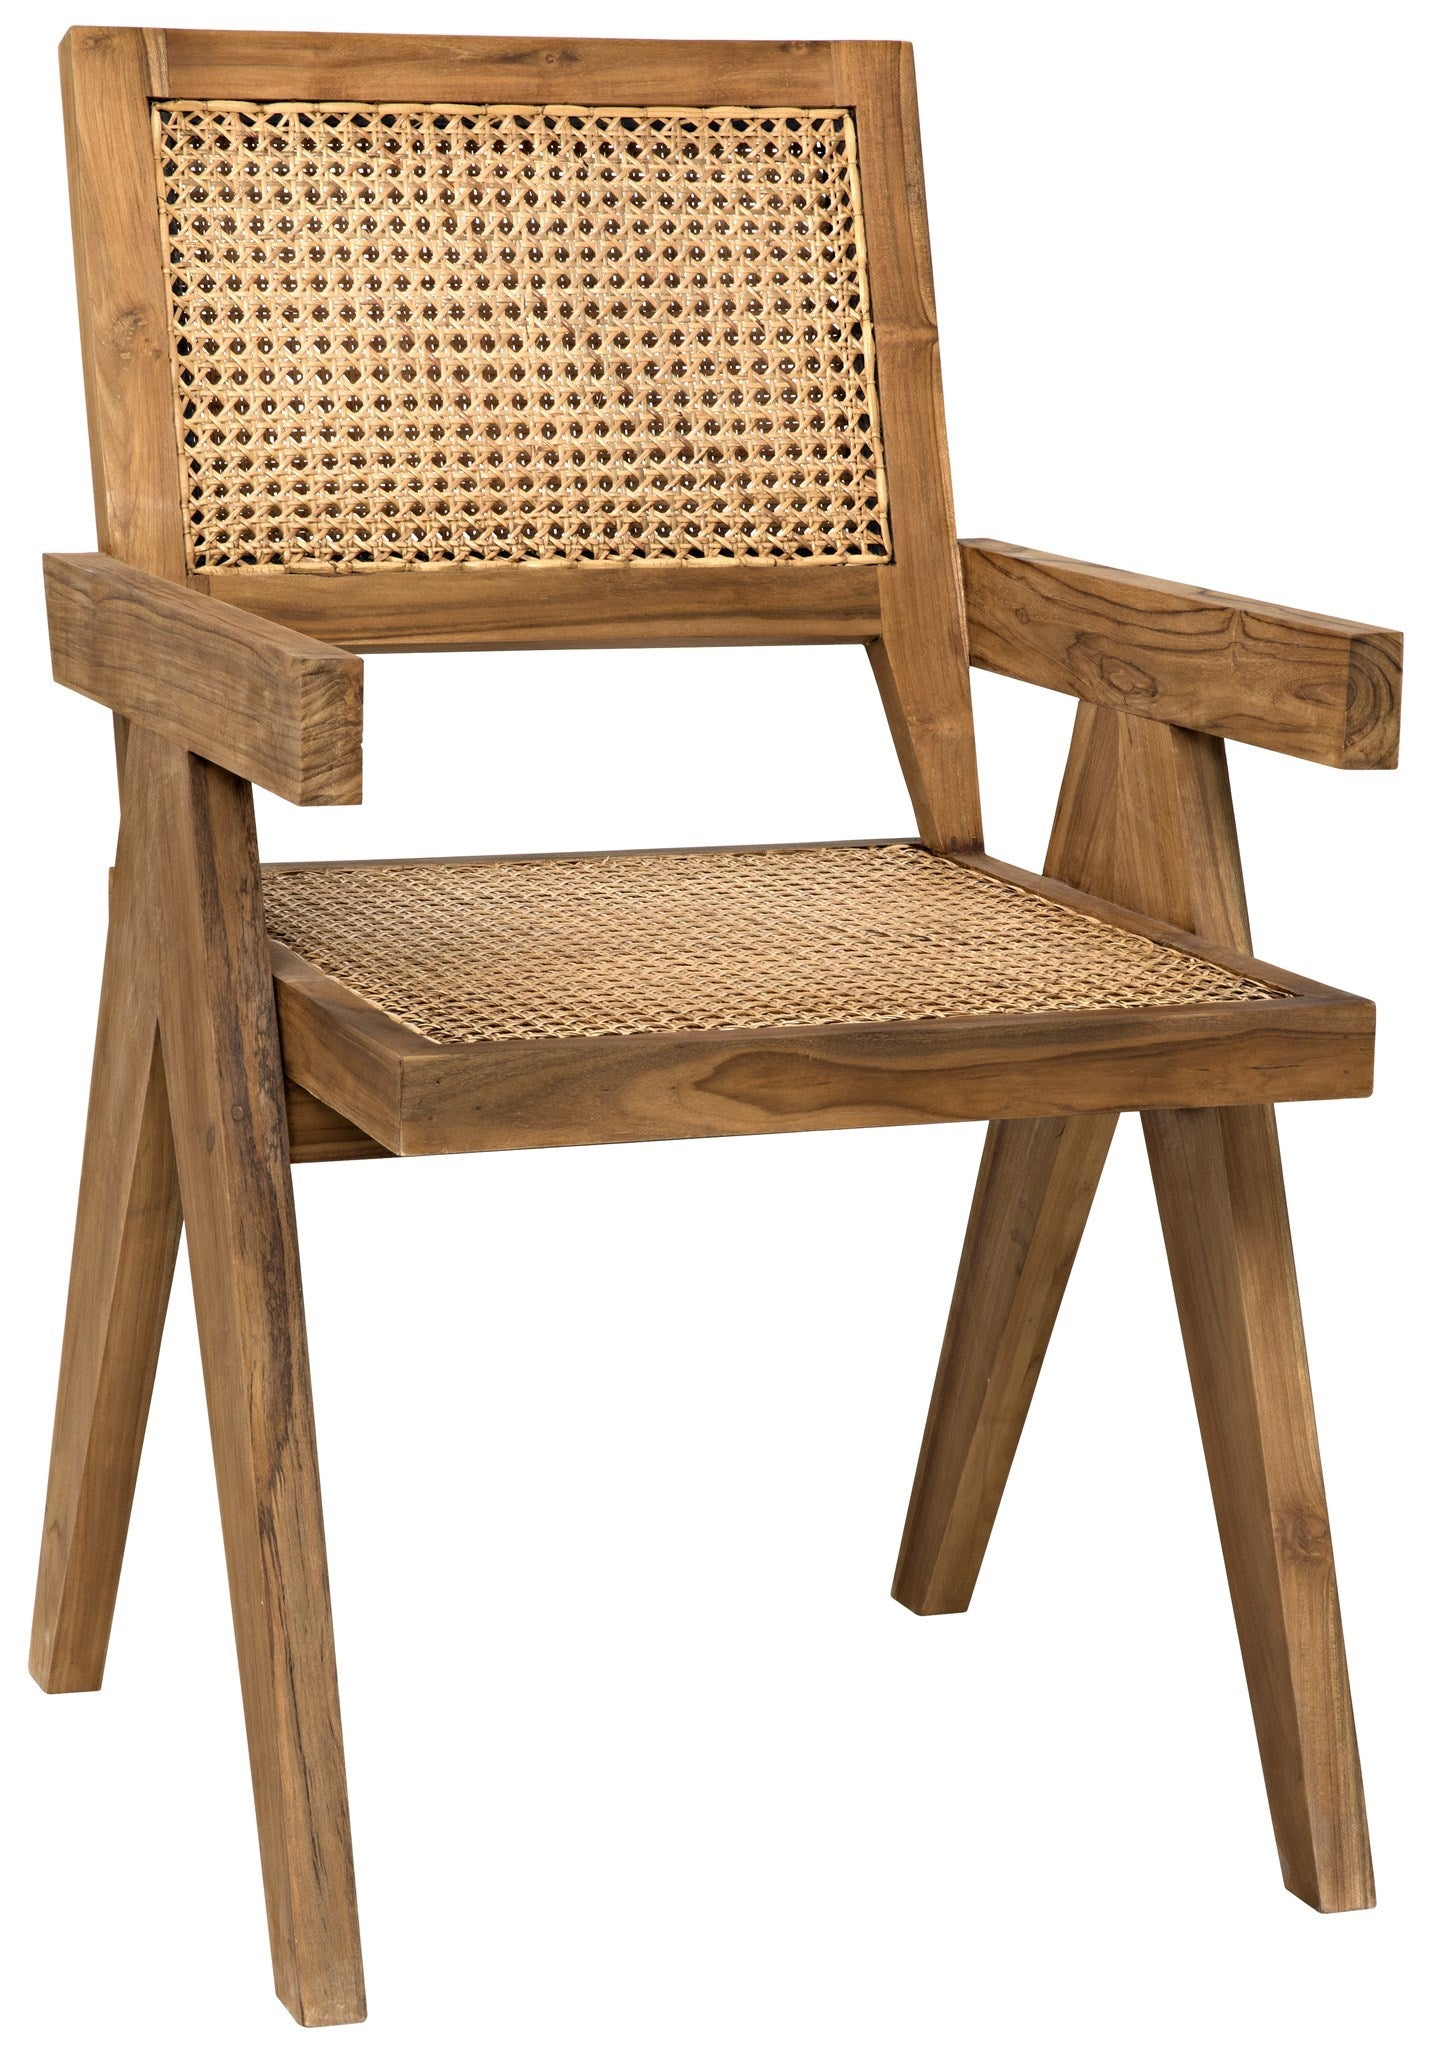 Cane Side Chair - CARLYLE AVENUE